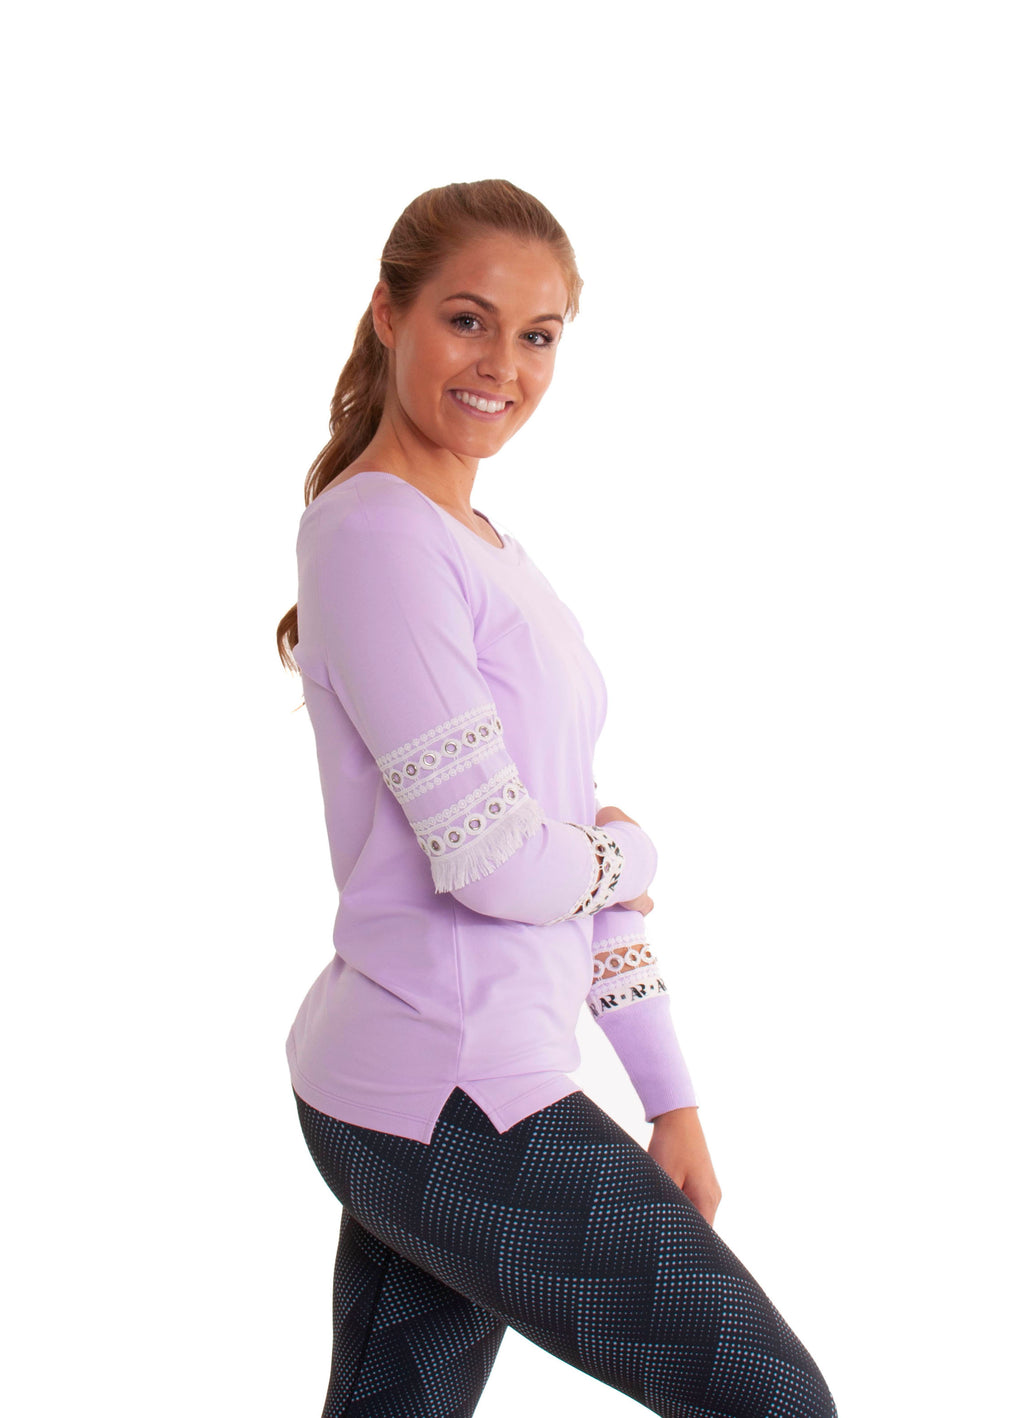 Jumper - round neck lilac jumper with mesh panels in the sleeve